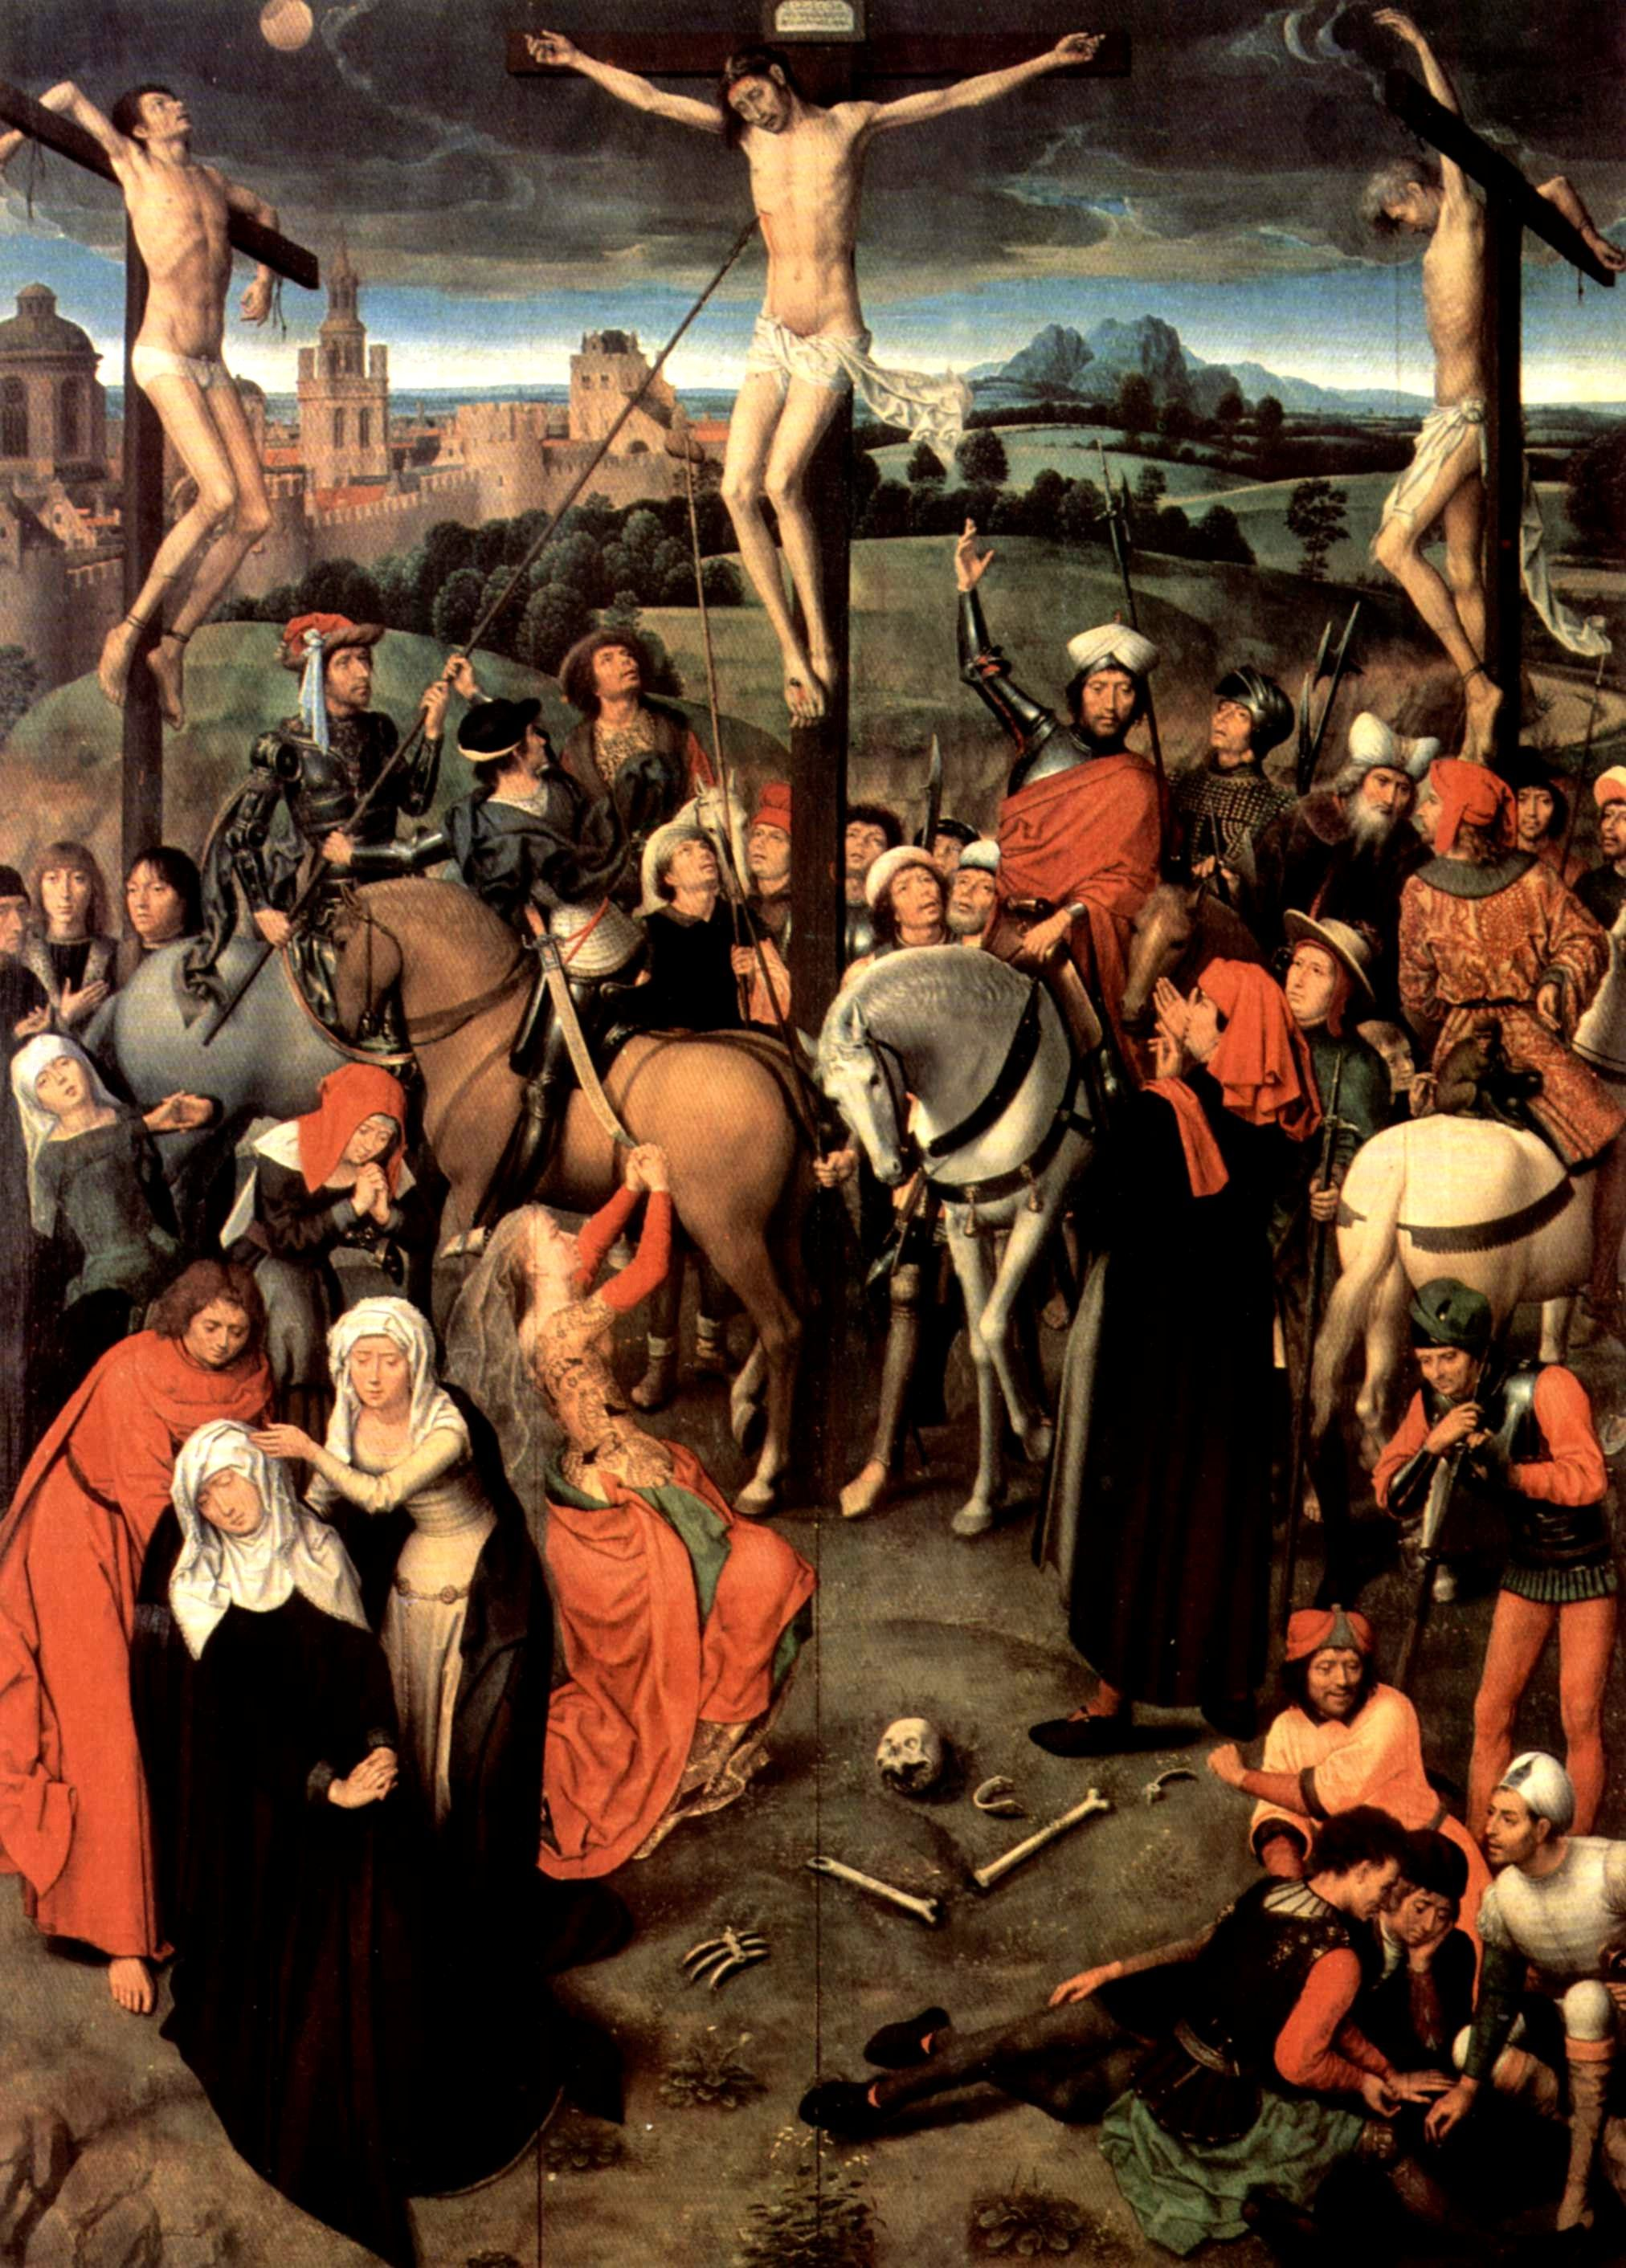 Arte Flamenco Barroco Hans Memling Scenes From The Passion Hans Memling Arte